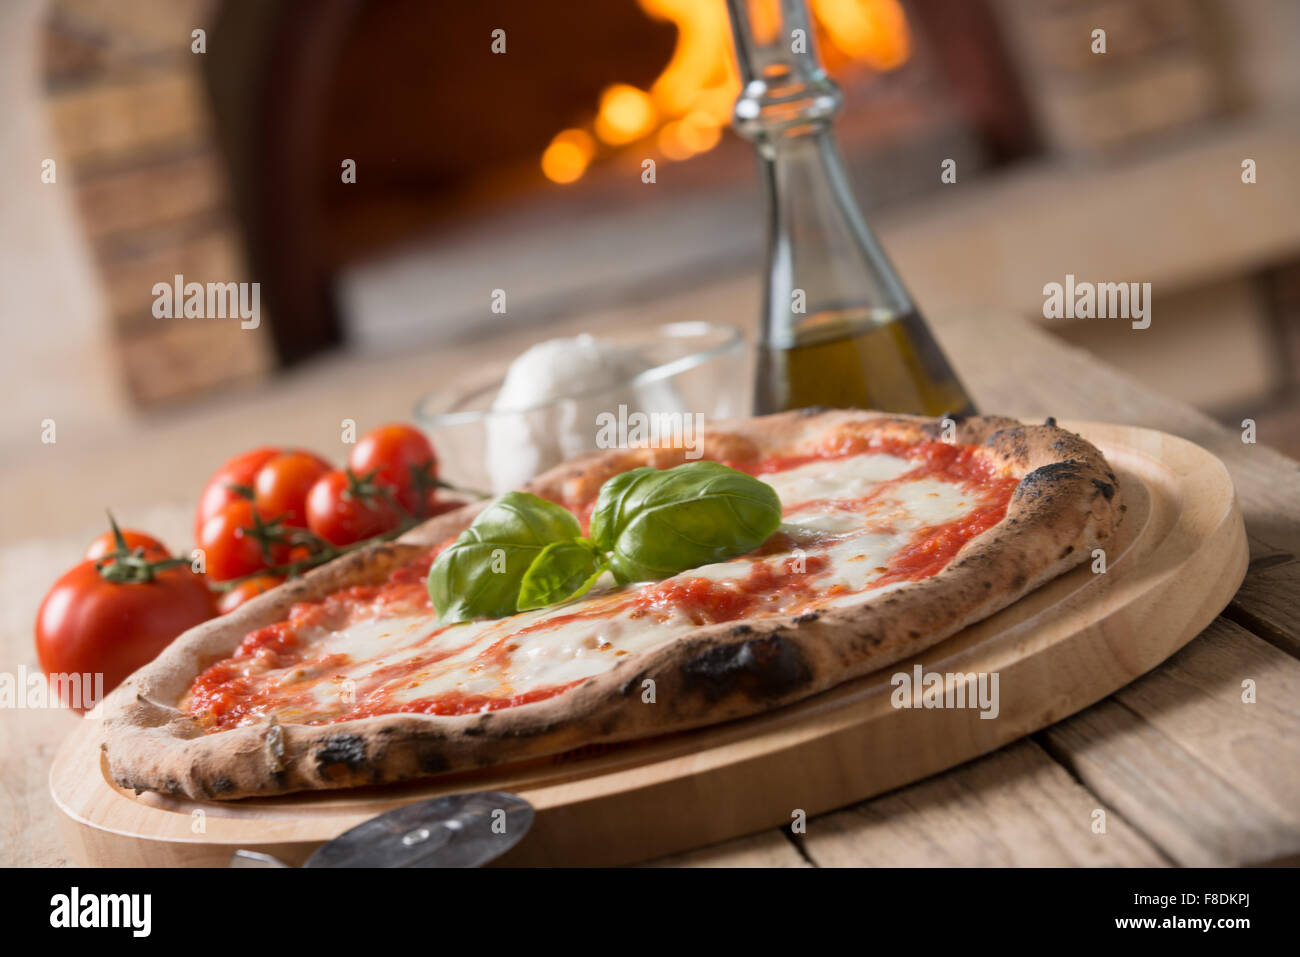 Cuite au four bois pizza italienne margherita Photo Stock